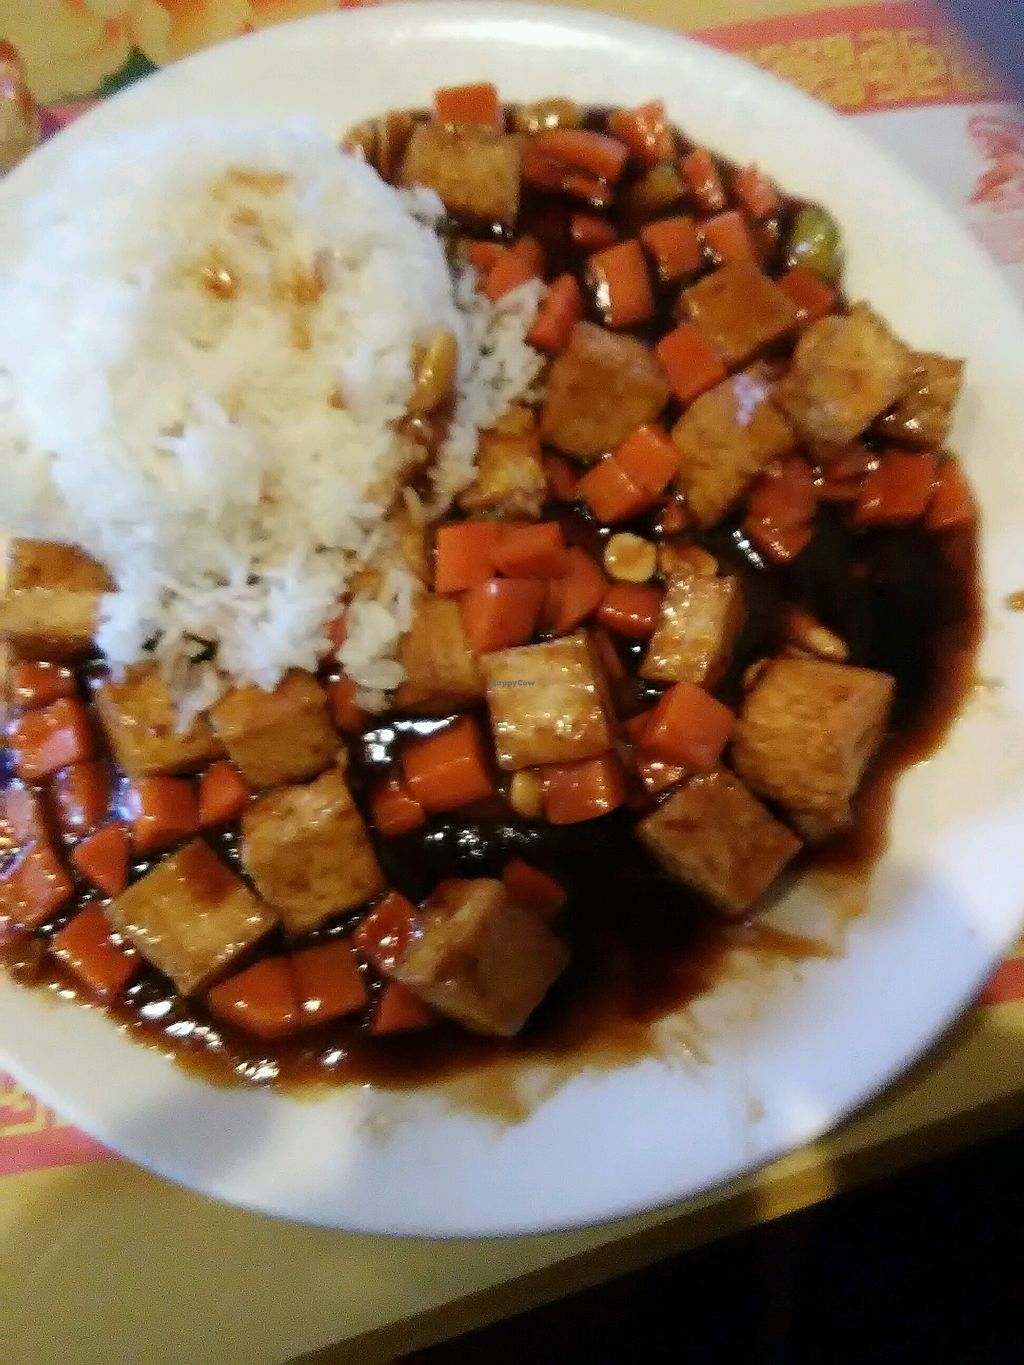 """Photo of Mark Pi's China Gate  by <a href=""""/members/profile/Williamewq123ify"""">Williamewq123ify</a> <br/>tofu Kung pao <br/> March 7, 2018  - <a href='/contact/abuse/image/70396/367784'>Report</a>"""